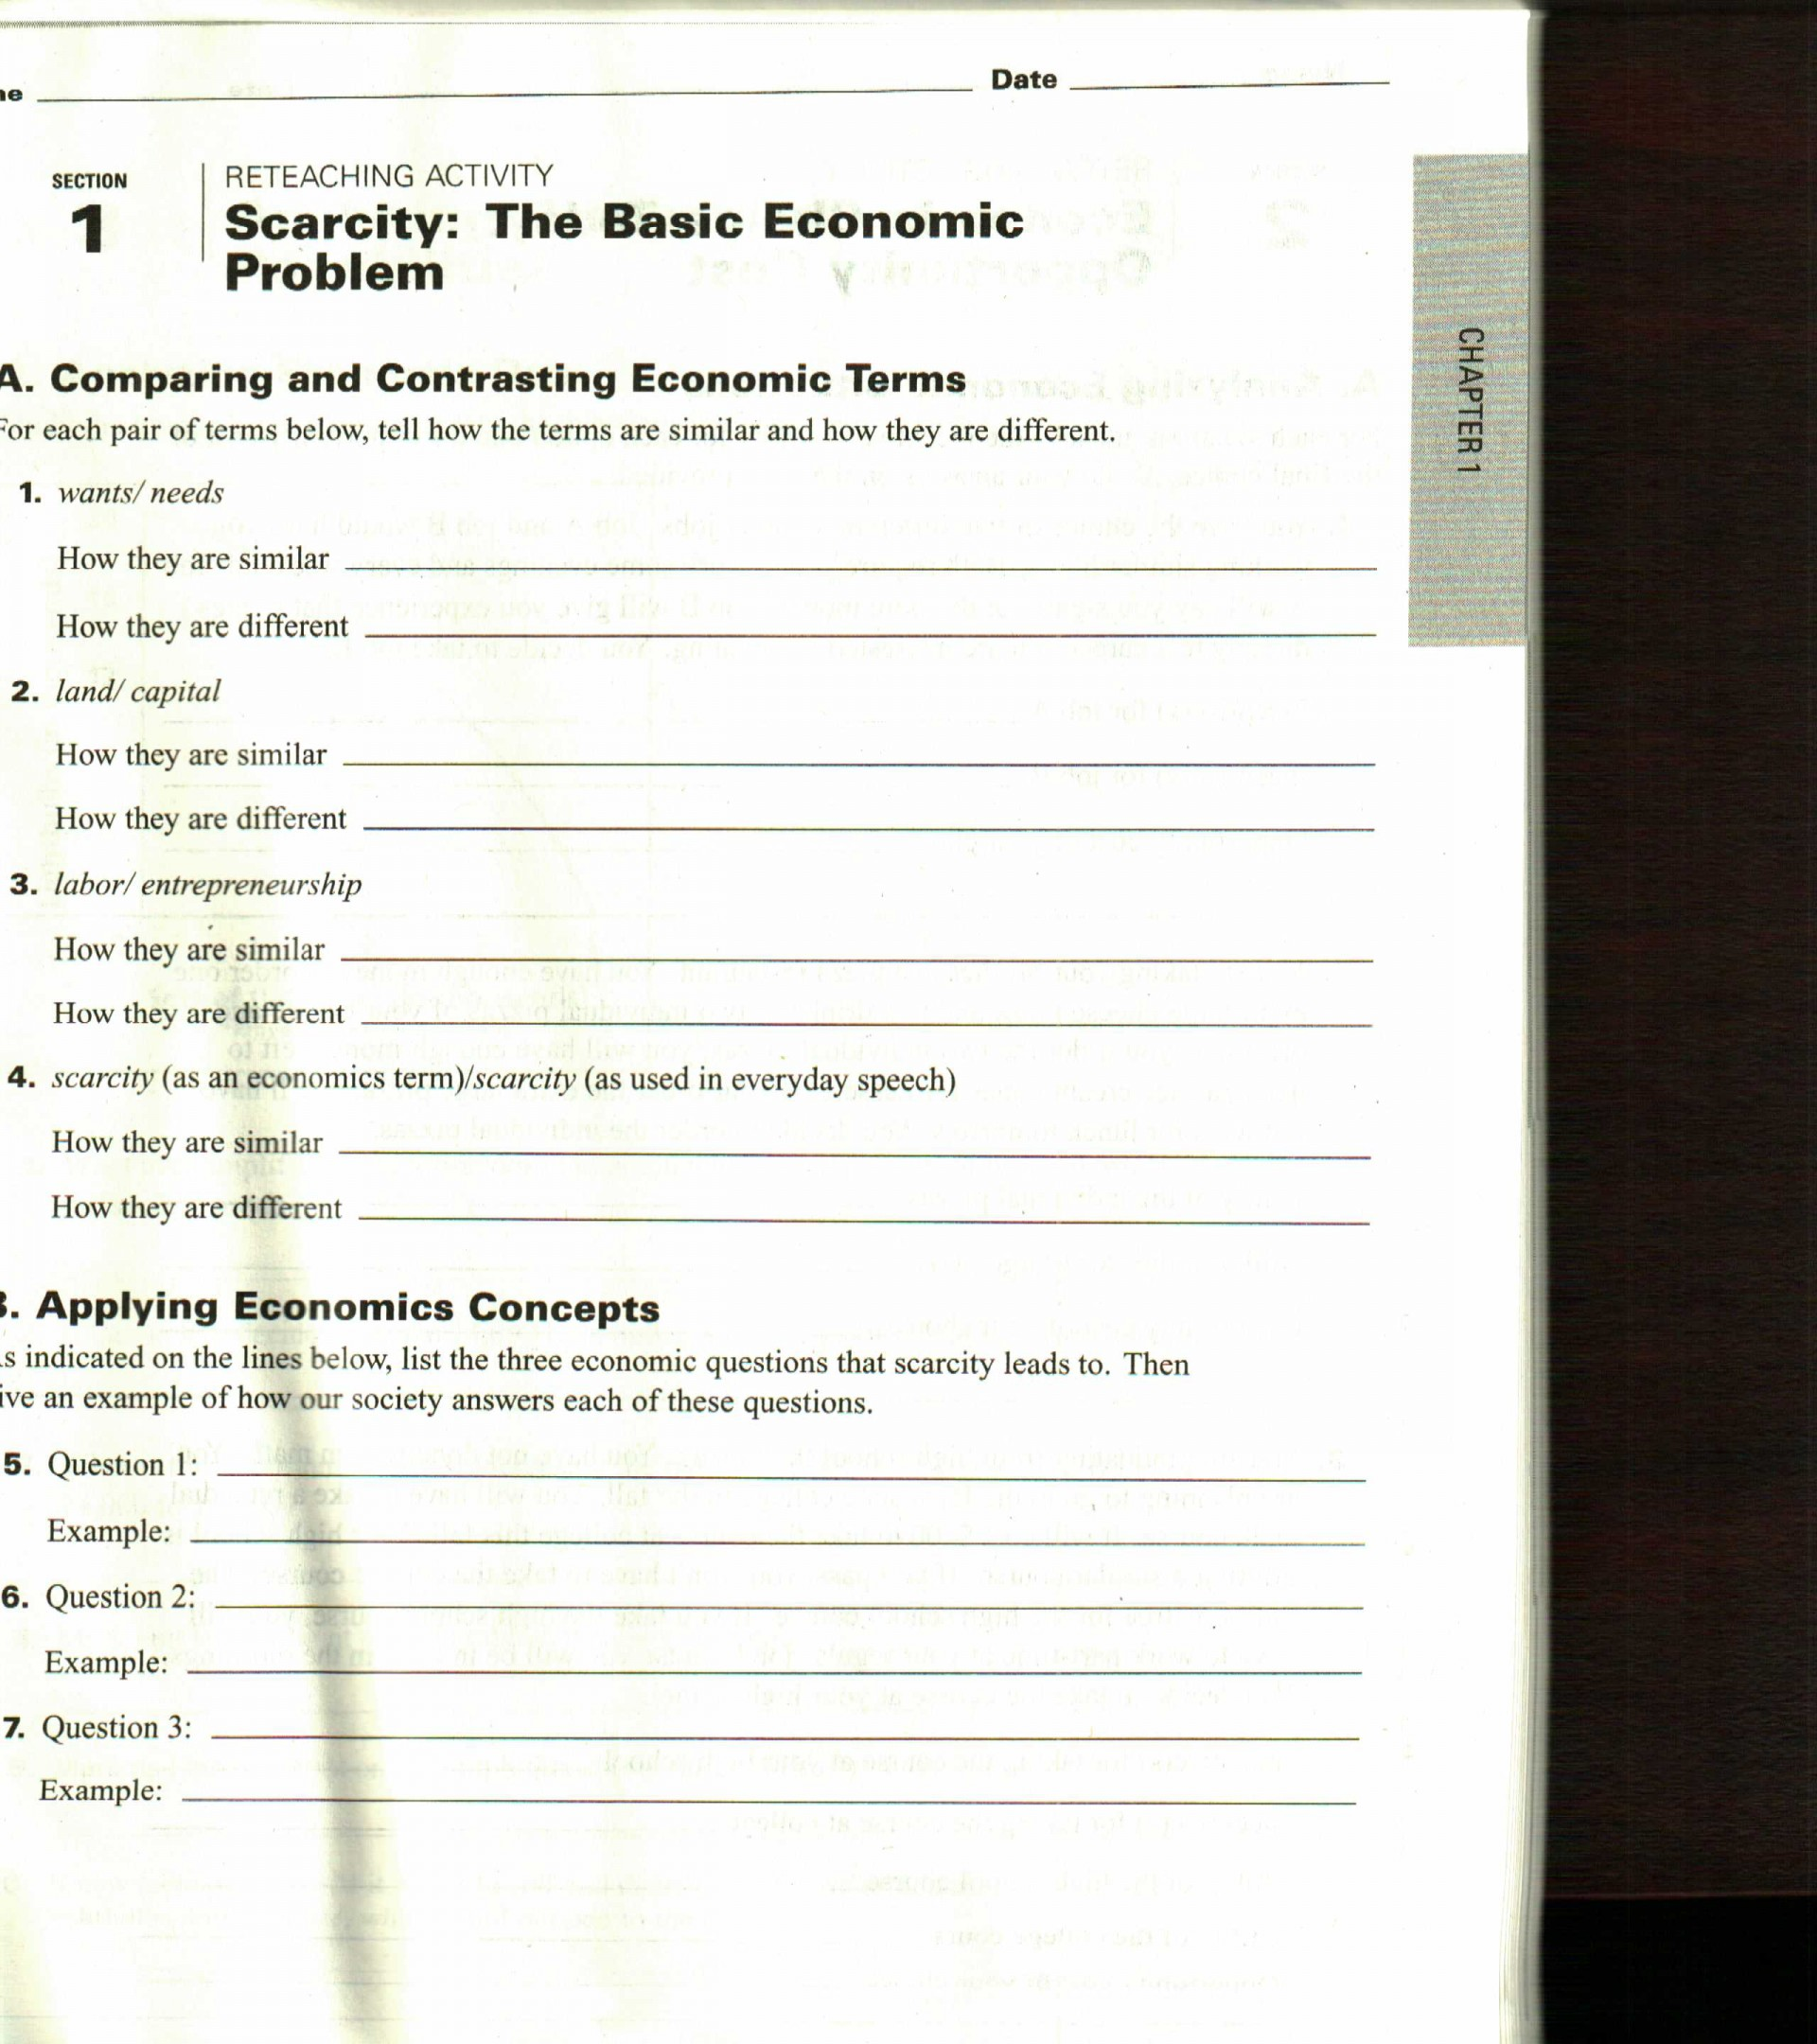 024 Essay Example20the20basic20economic20problem About Excellent Scarcity Food On Of Water In 200 Words India 1920